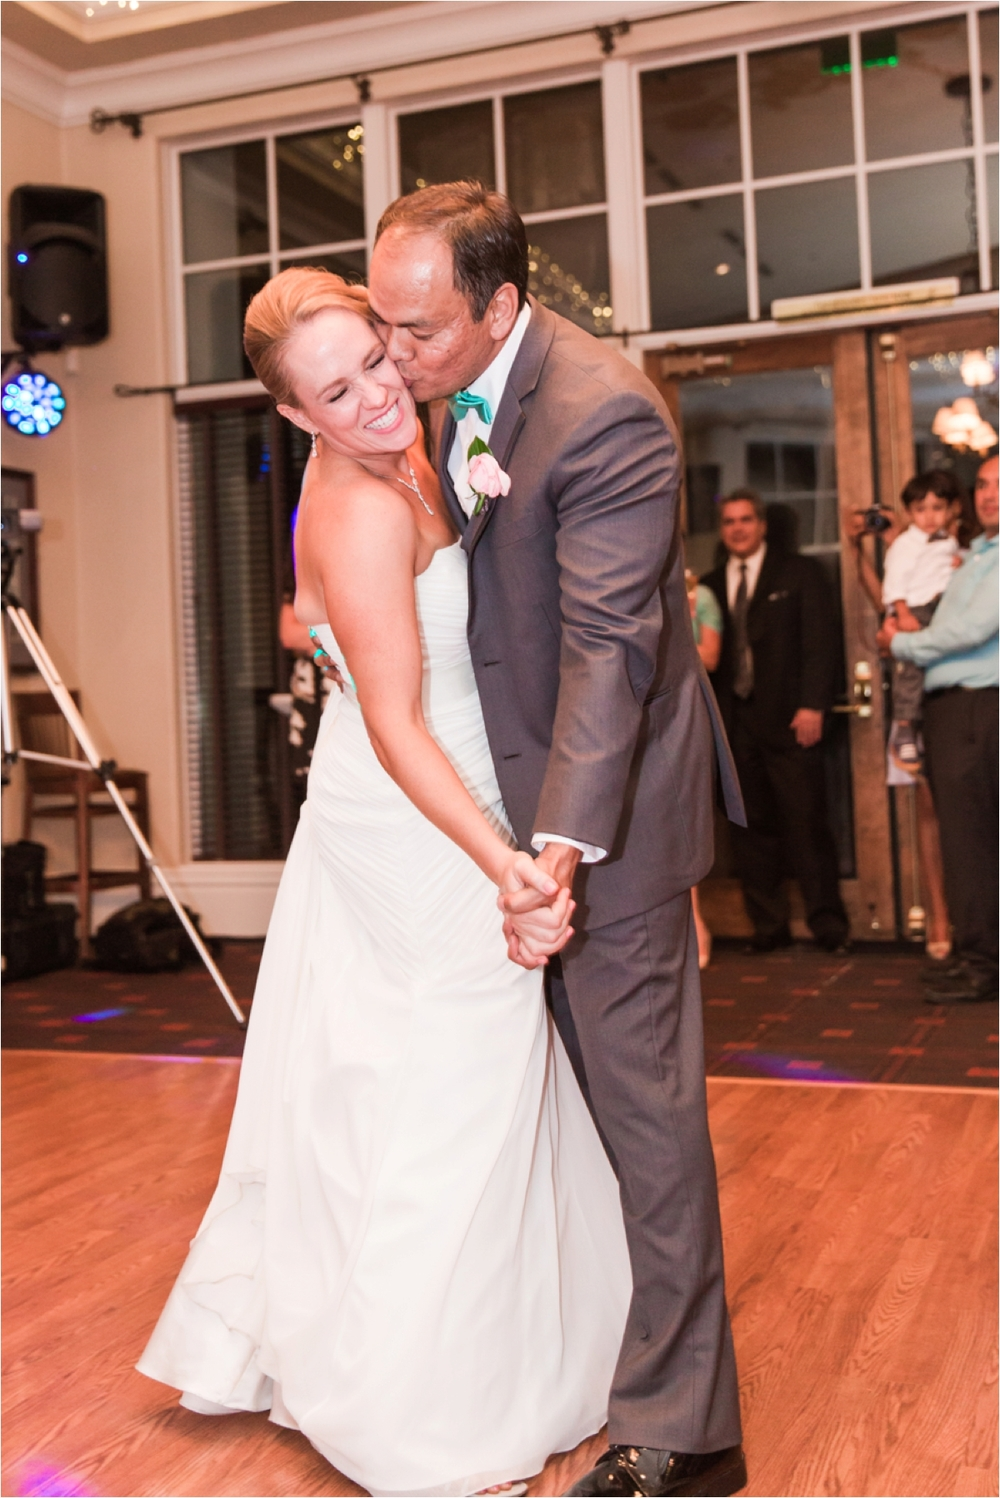 Eagle Ridge Golf Club wedding pictures by Briana Calderon Photography_0452.jpg